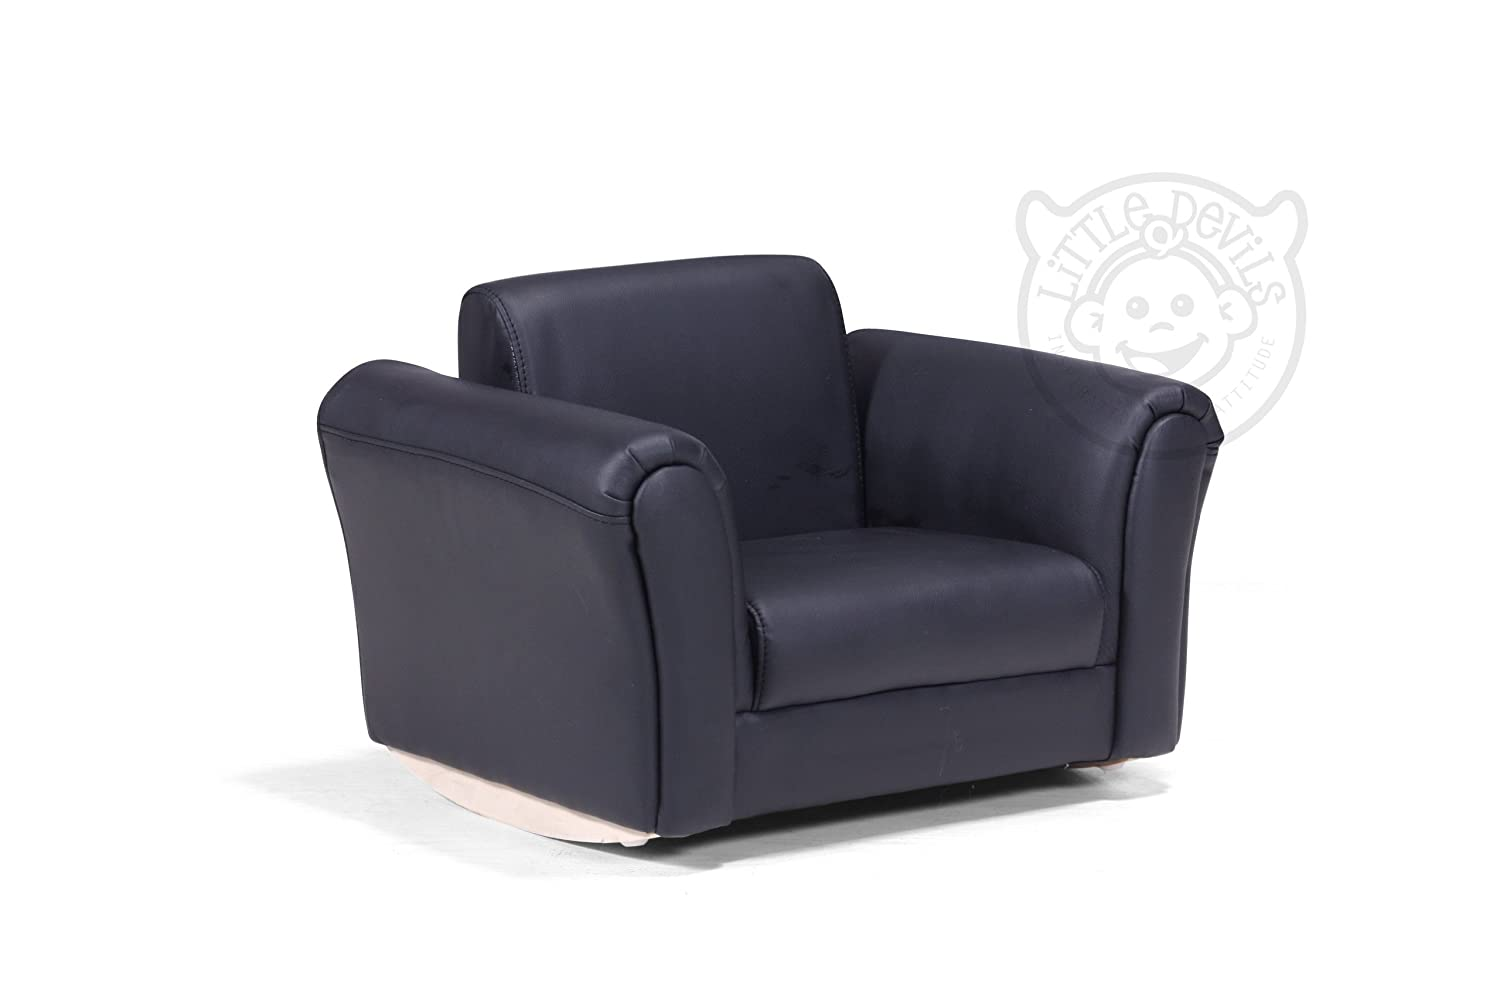 BLACK LAZYBONES LEATHER ROCKING Chair Armchair Kids Childrens with – Childs Leather Chair